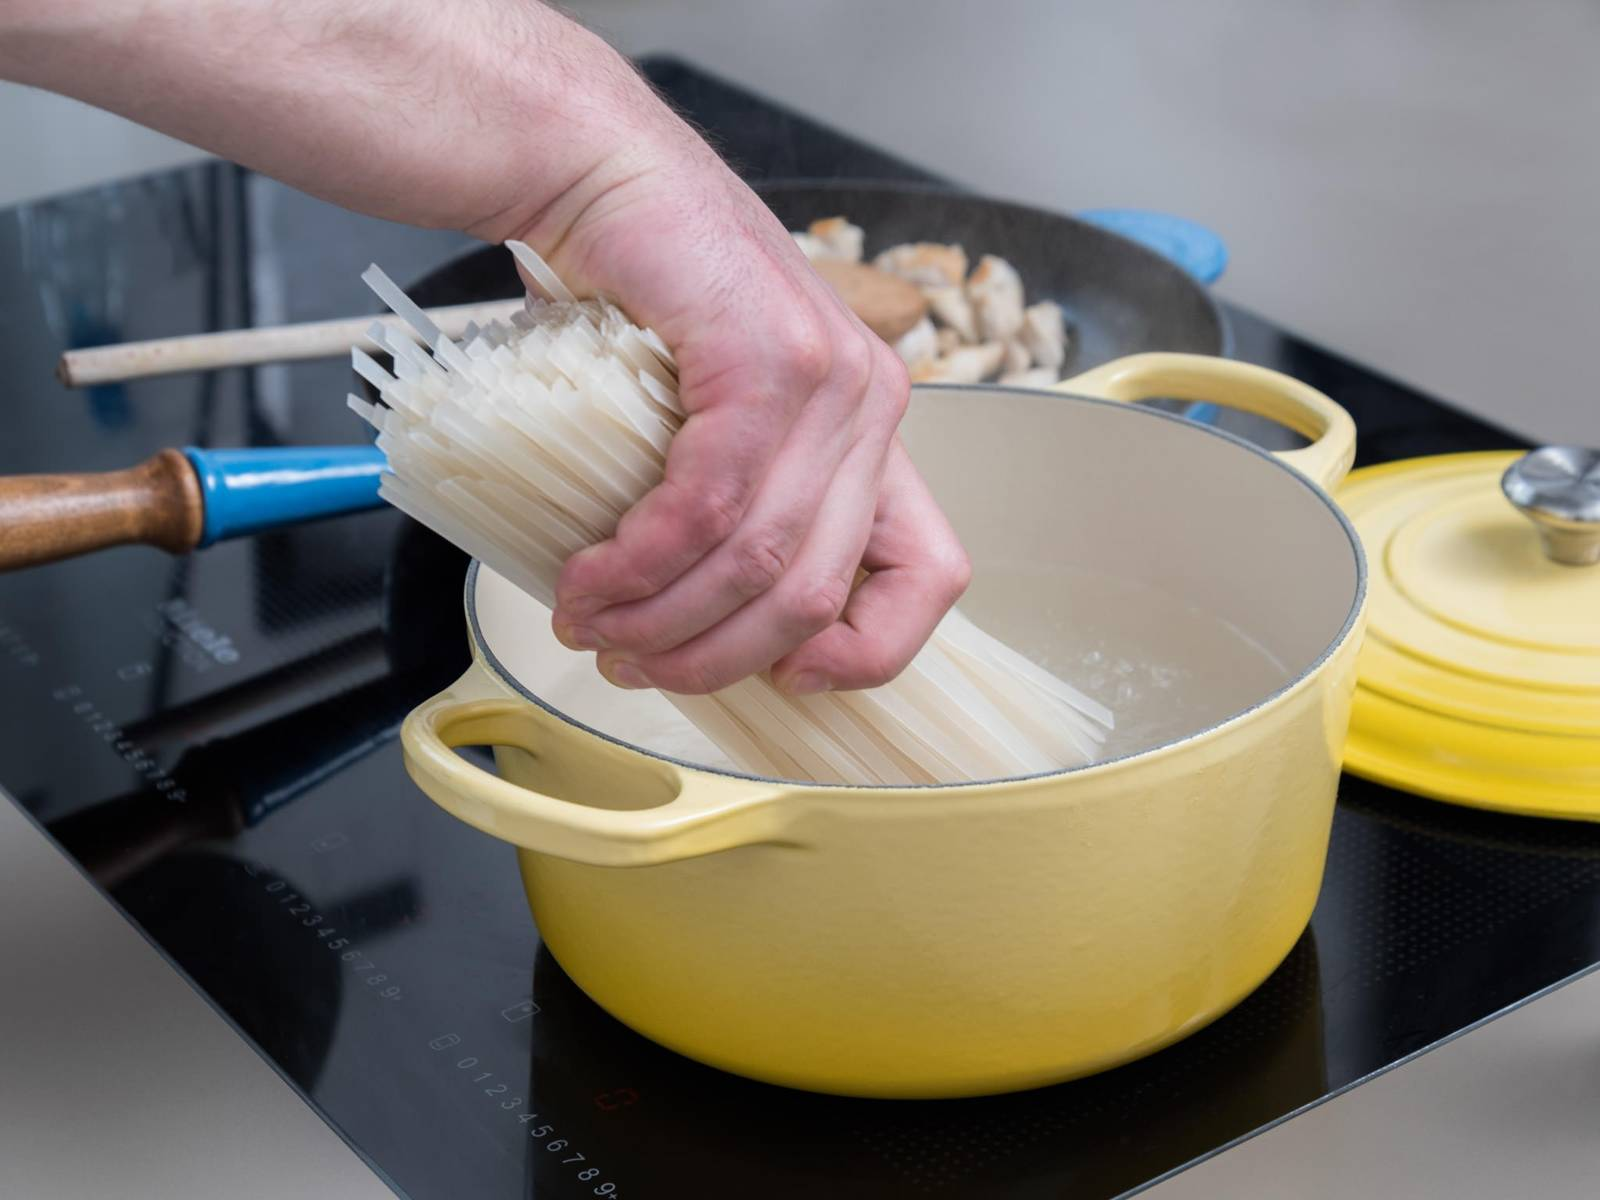 Add salted water to a large saucepan and bring to a boil. Add rice noodles and cook for approx. 8 – 10 min. Drain and add rice noodles to mixing bowl.